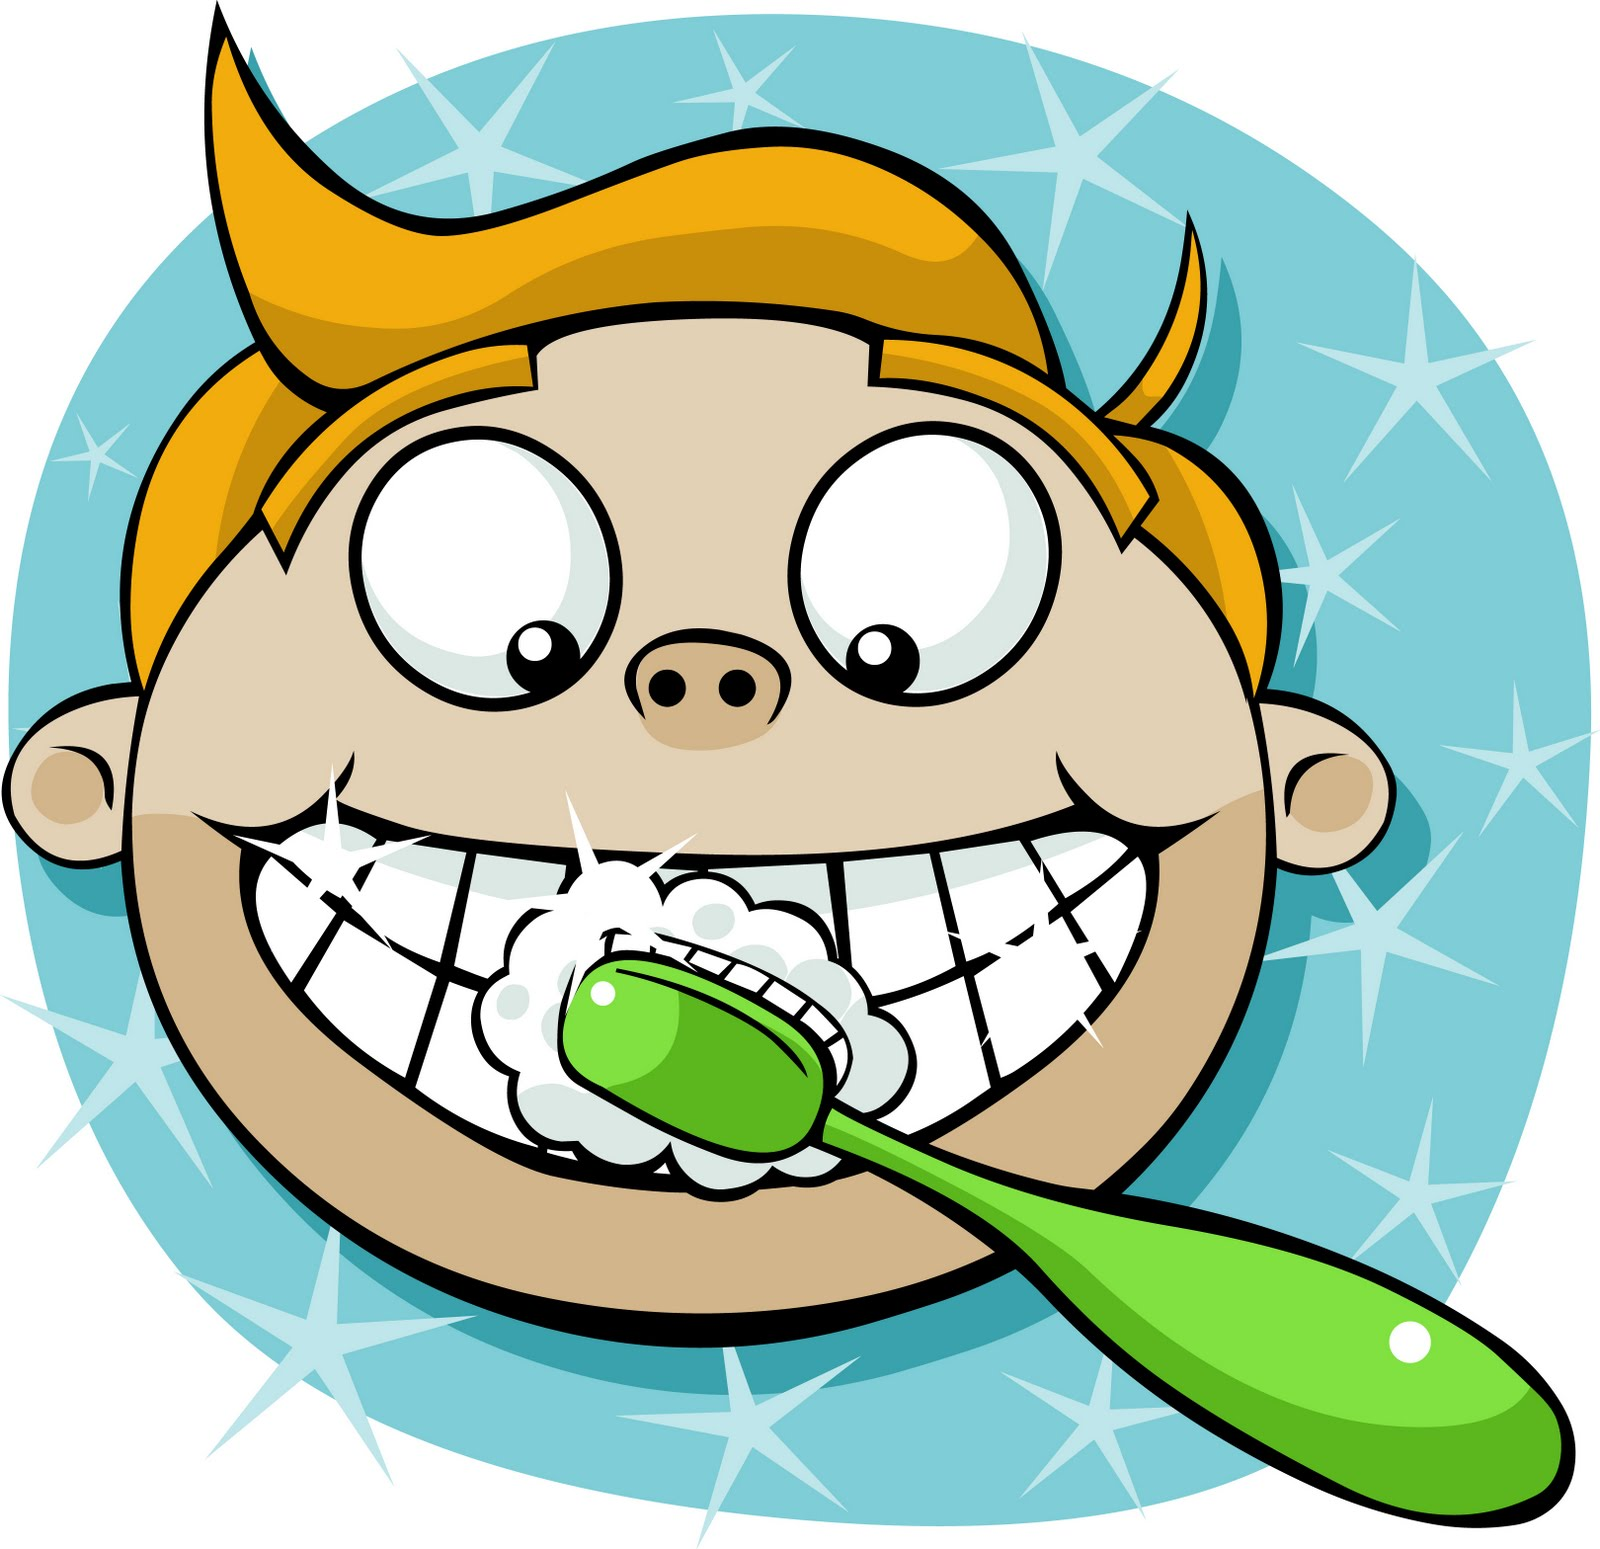 Help Your Mouth The Best Brushing Tip Ev-Help Your Mouth The Best Brushing Tip Ever-13